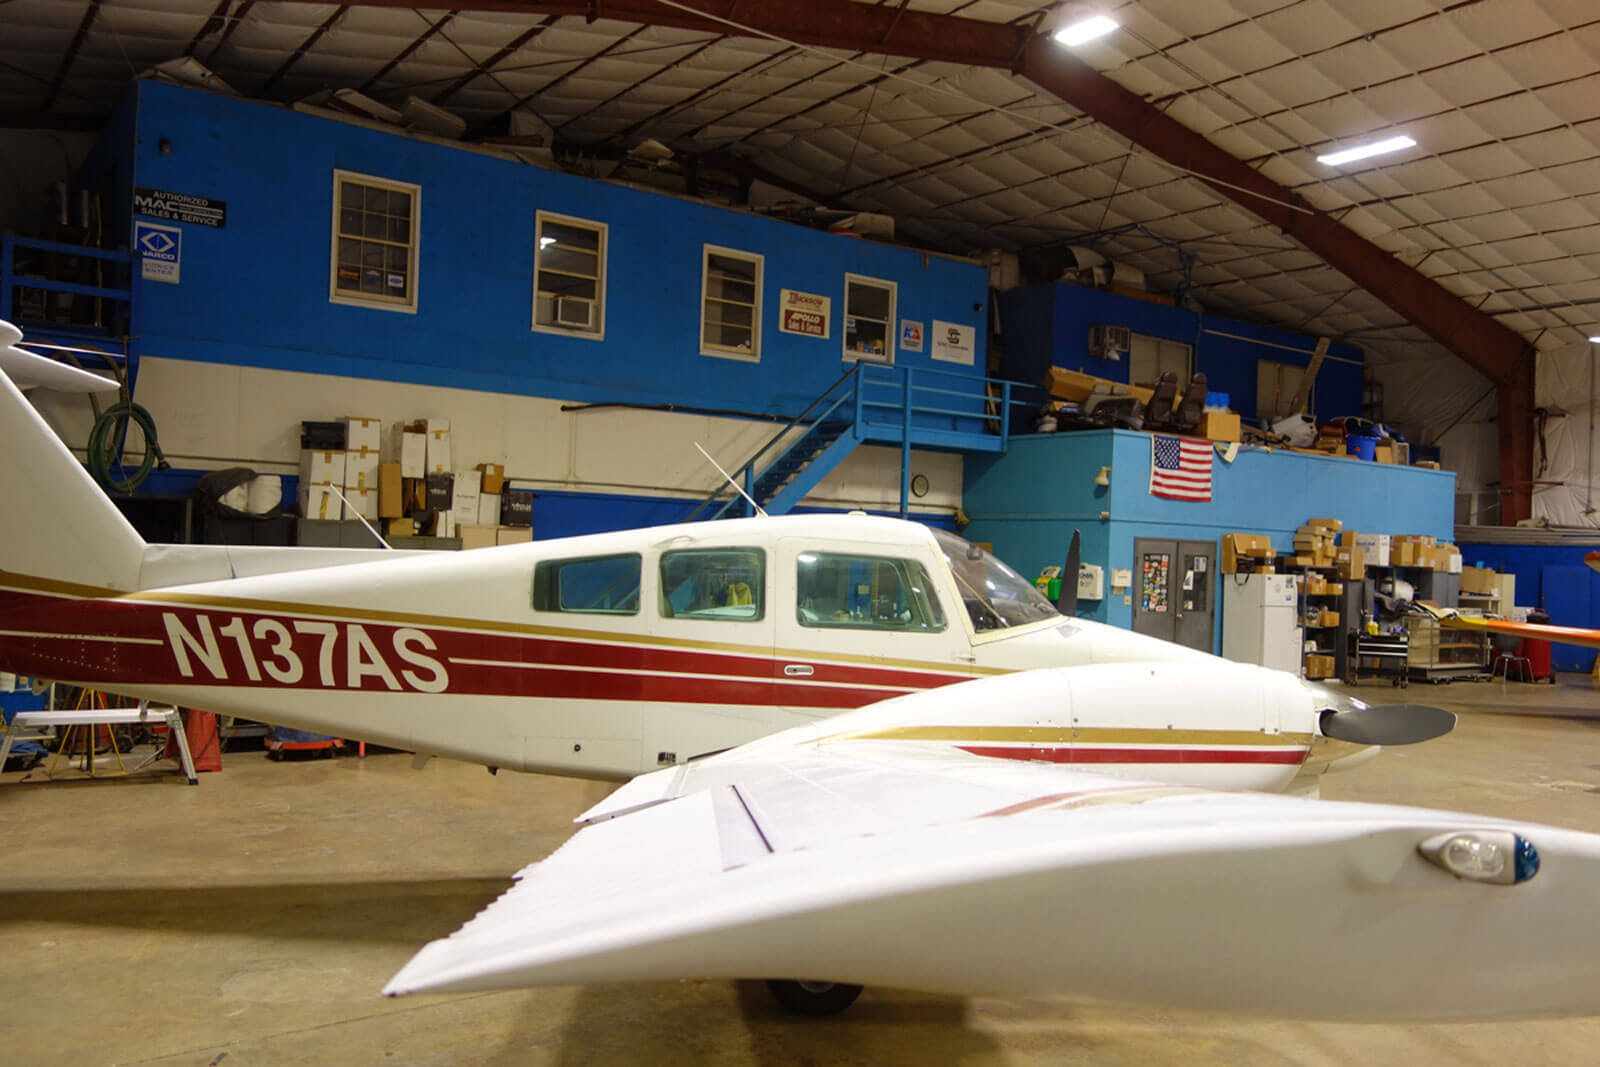 1978 Beech Dutchess 76 - FOR SALE at Princeton Airport Contact Ken Nierenberg at 609-731-4628 for details